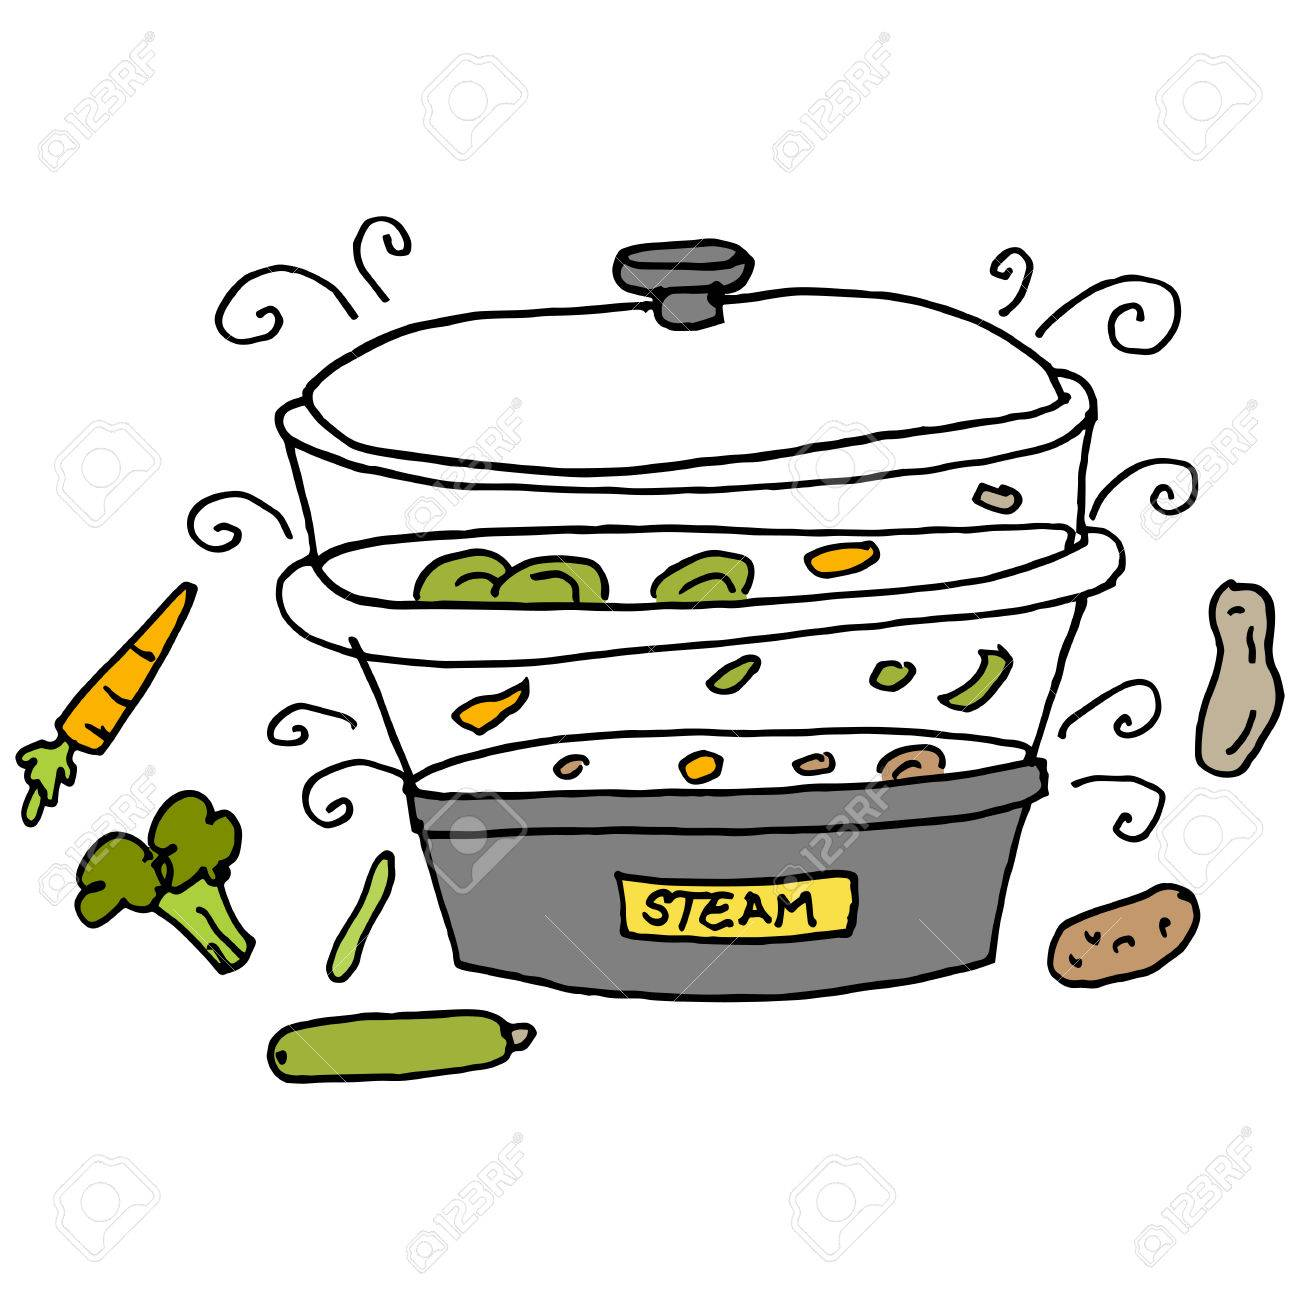 An Image Of A Steam Machine Cooker. Royalty Free Cliparts, Vectors, And Stock Illustration. Image 55434057.